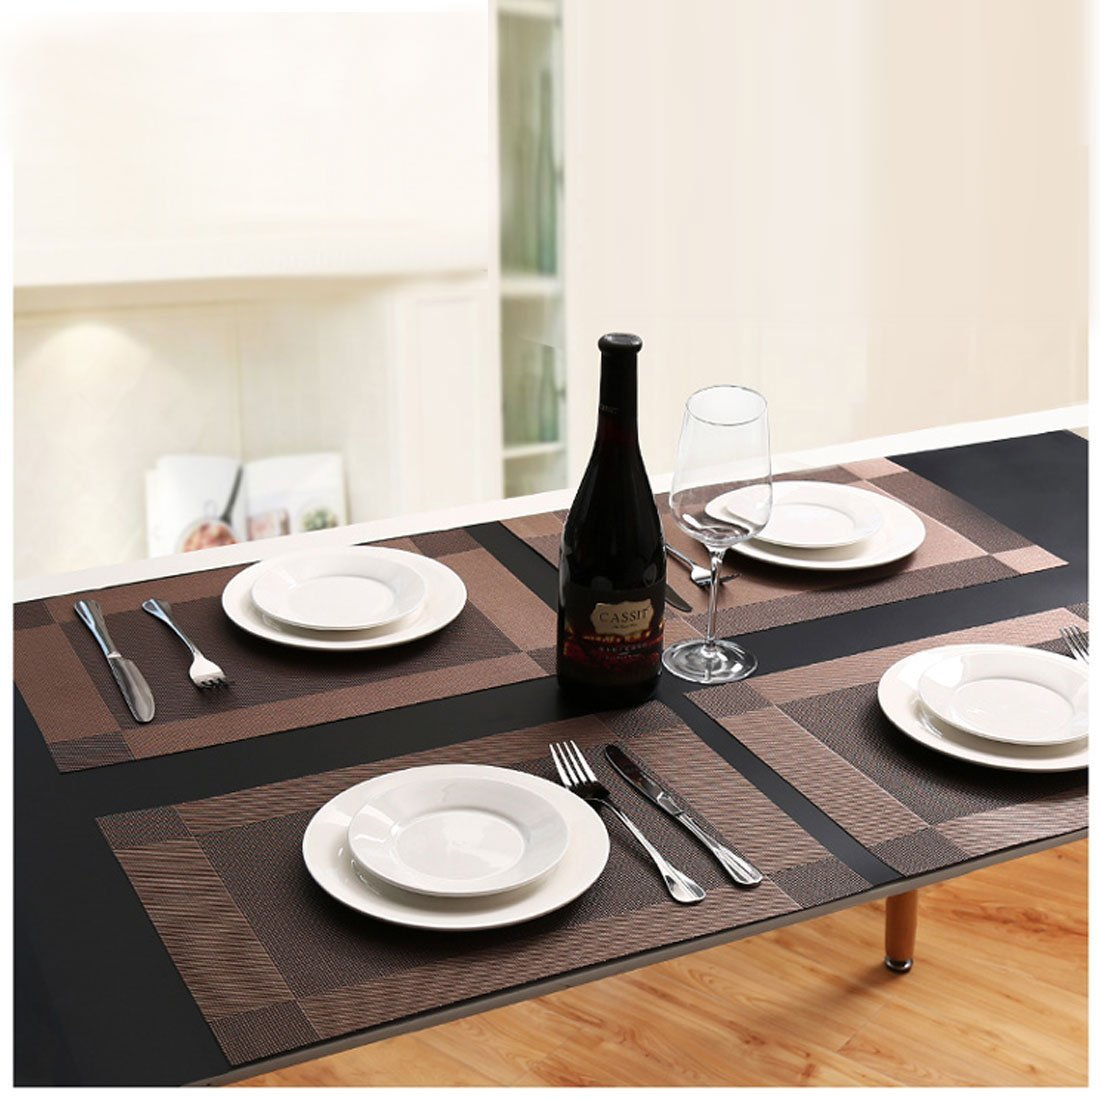 PVC Table Mats Sets 6 /& 1 Table Runner Non-Slip Washable Table Placemats Coffee Mats Dining Table AwesomeWare Placemat